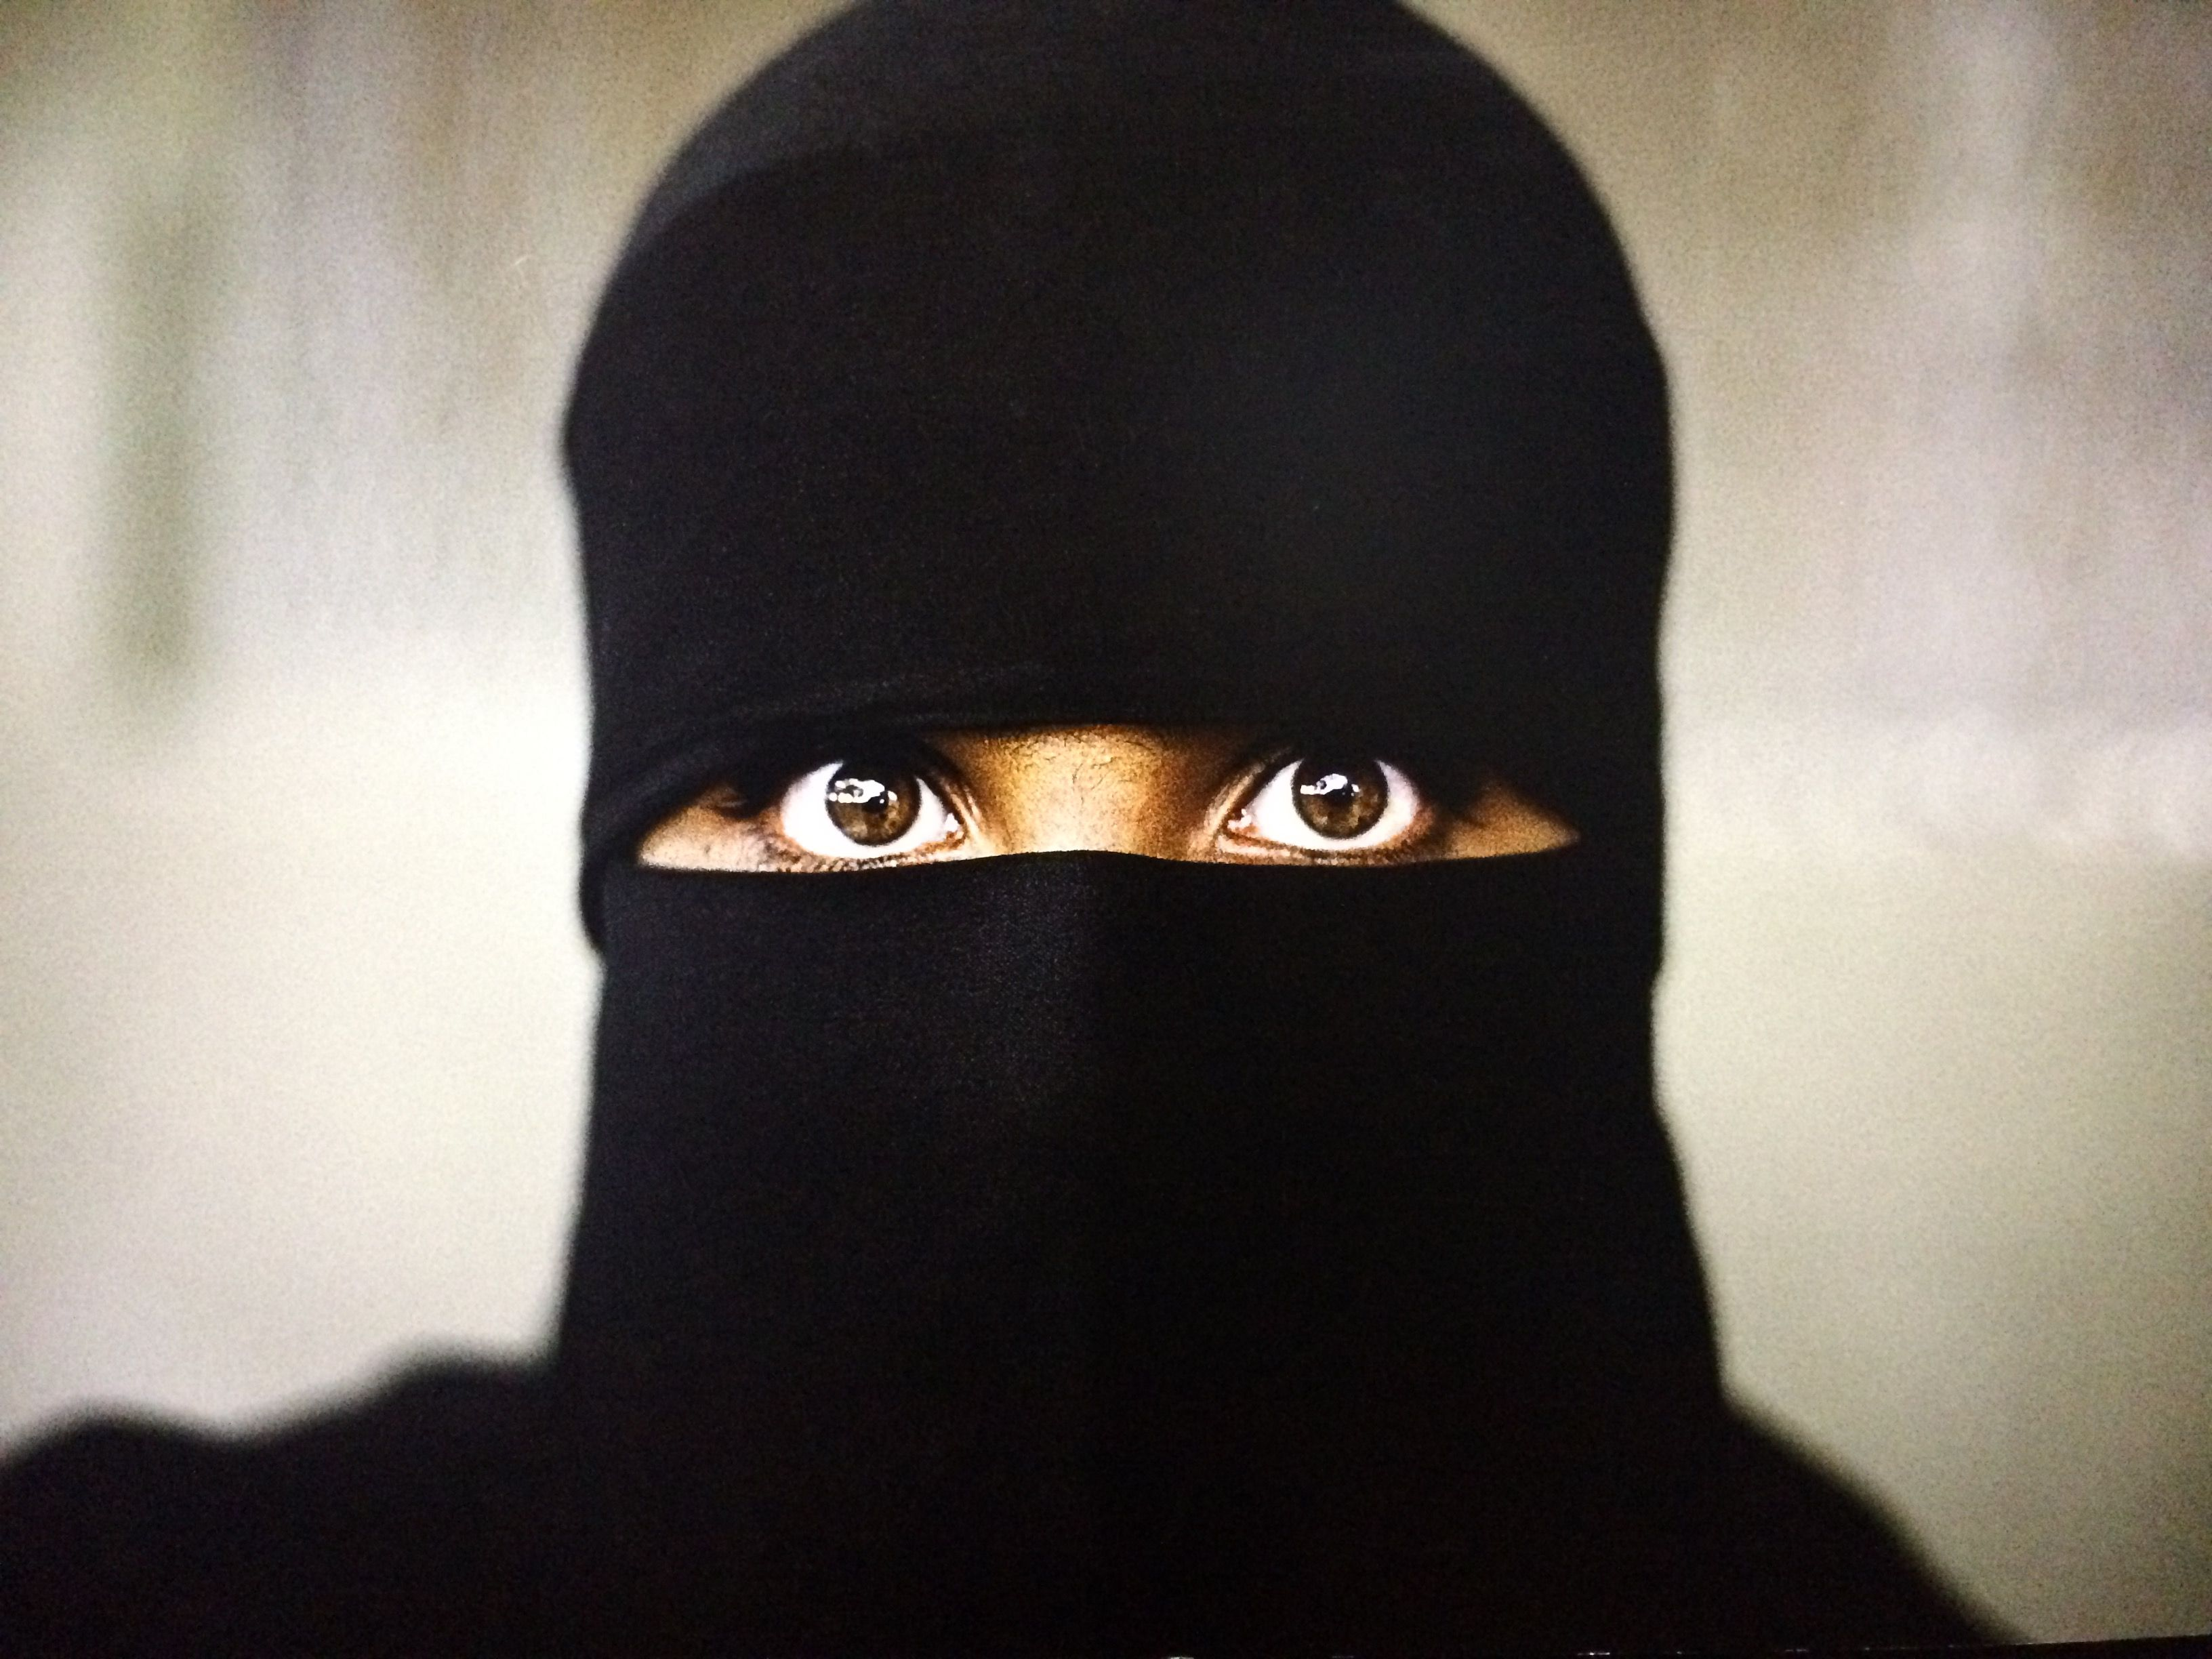 #Expo #exhibition #TheWorldofSteveMcCurry #lookintheeyes #inspiration #SteveMcCurry #Brussels #Bourse